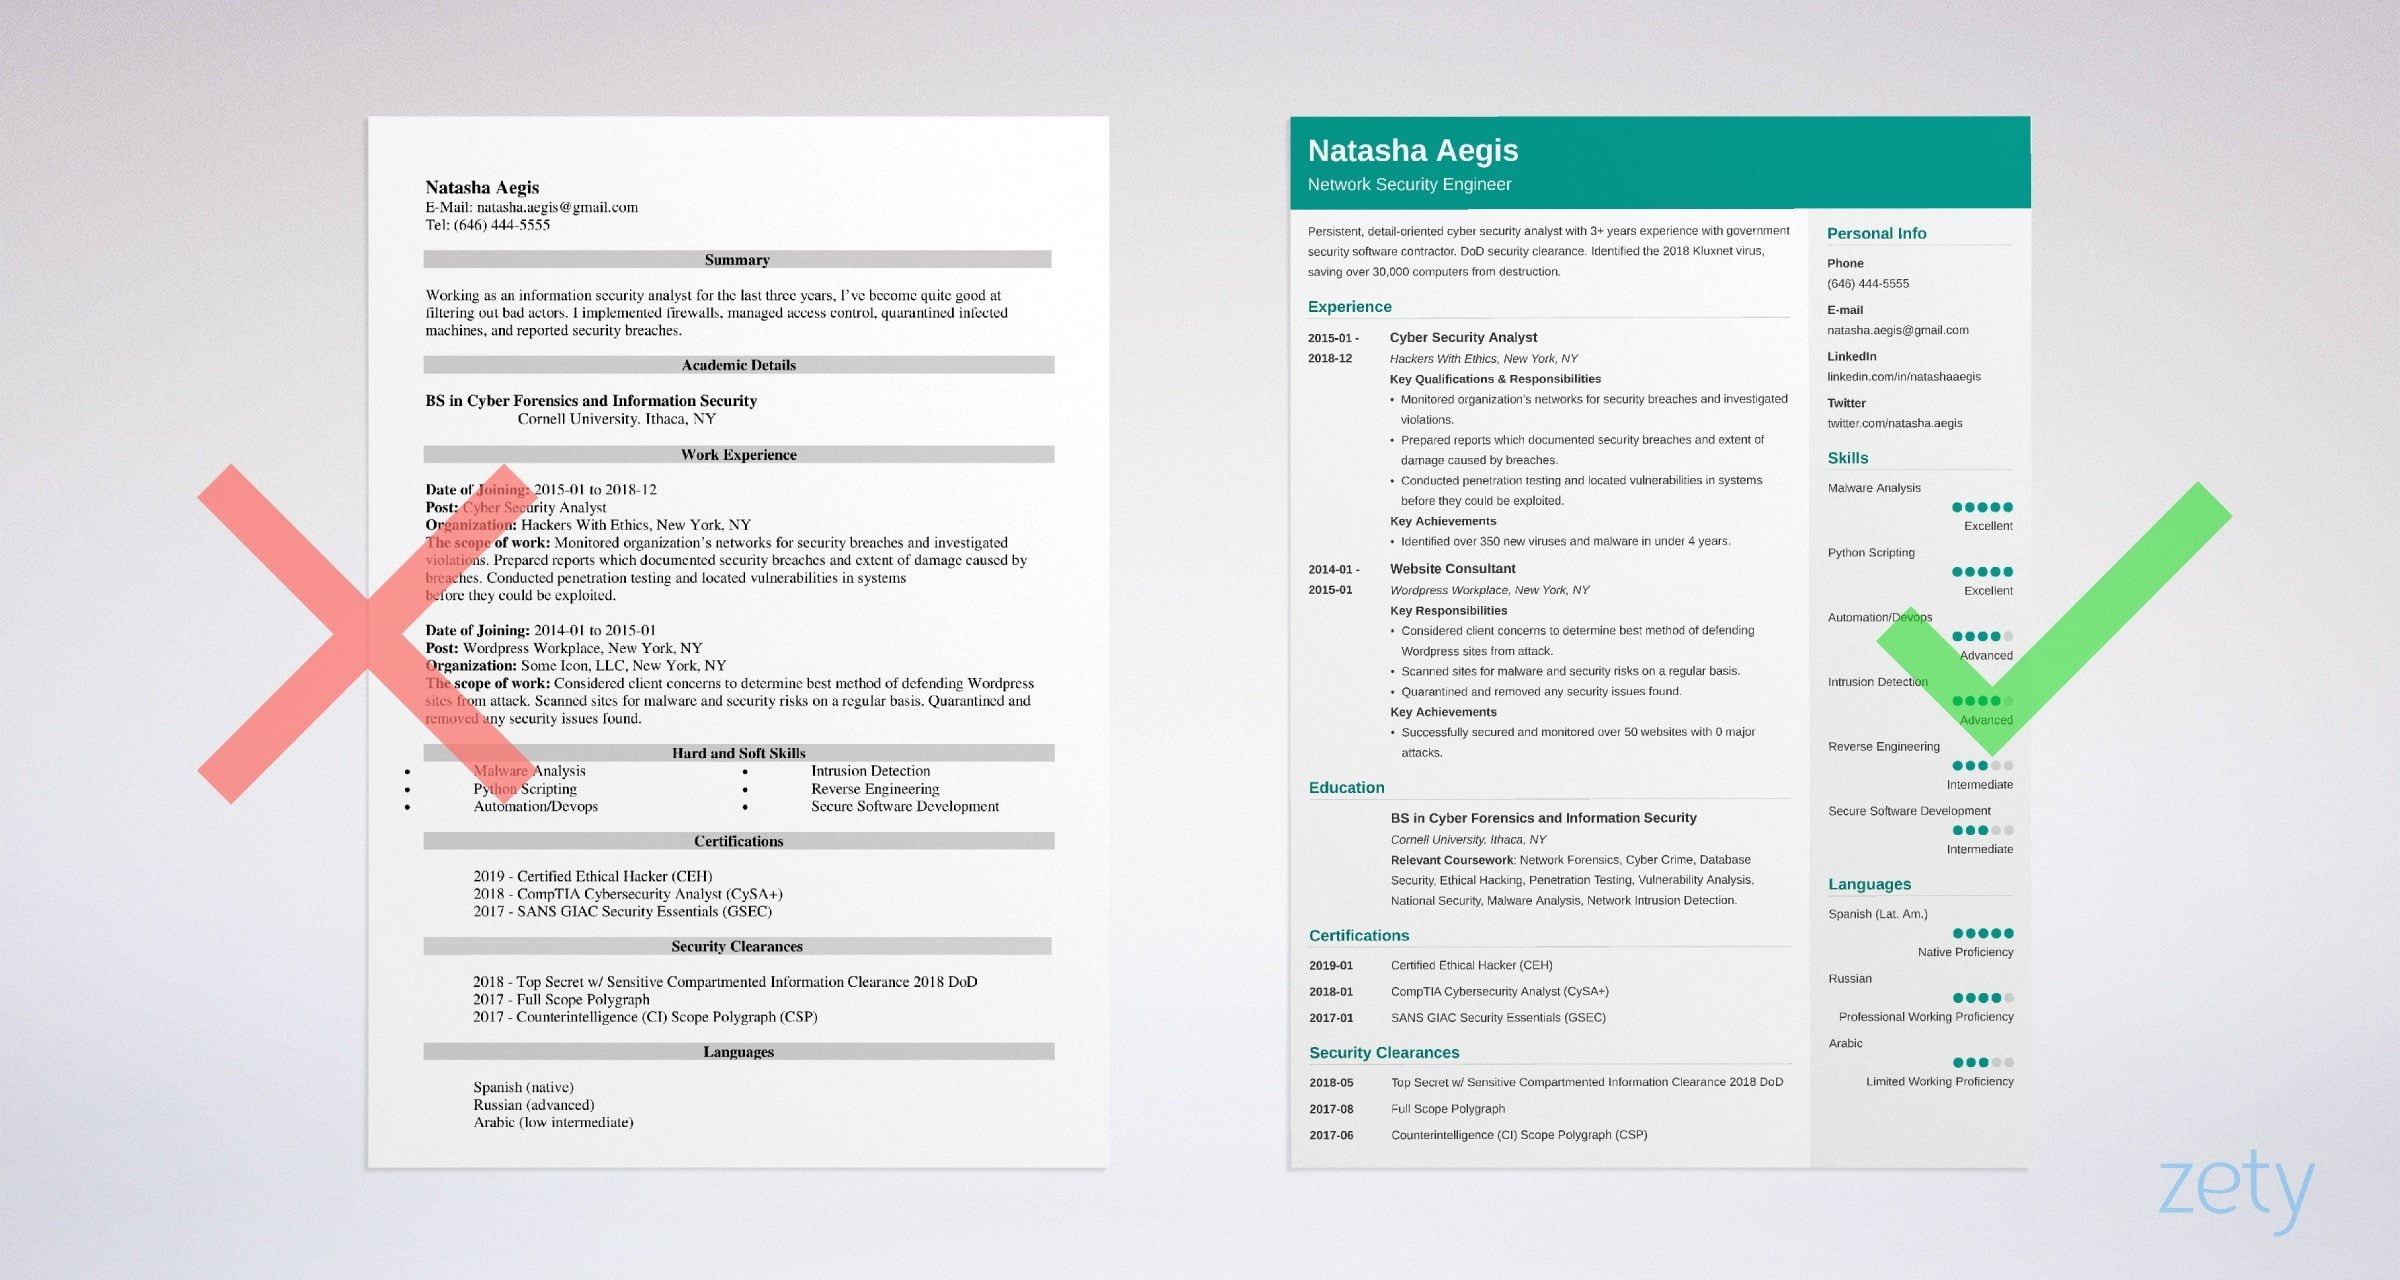 cyber security resume sample also for entry level analysts keywords example reddit Resume Cyber Security Resume Keywords